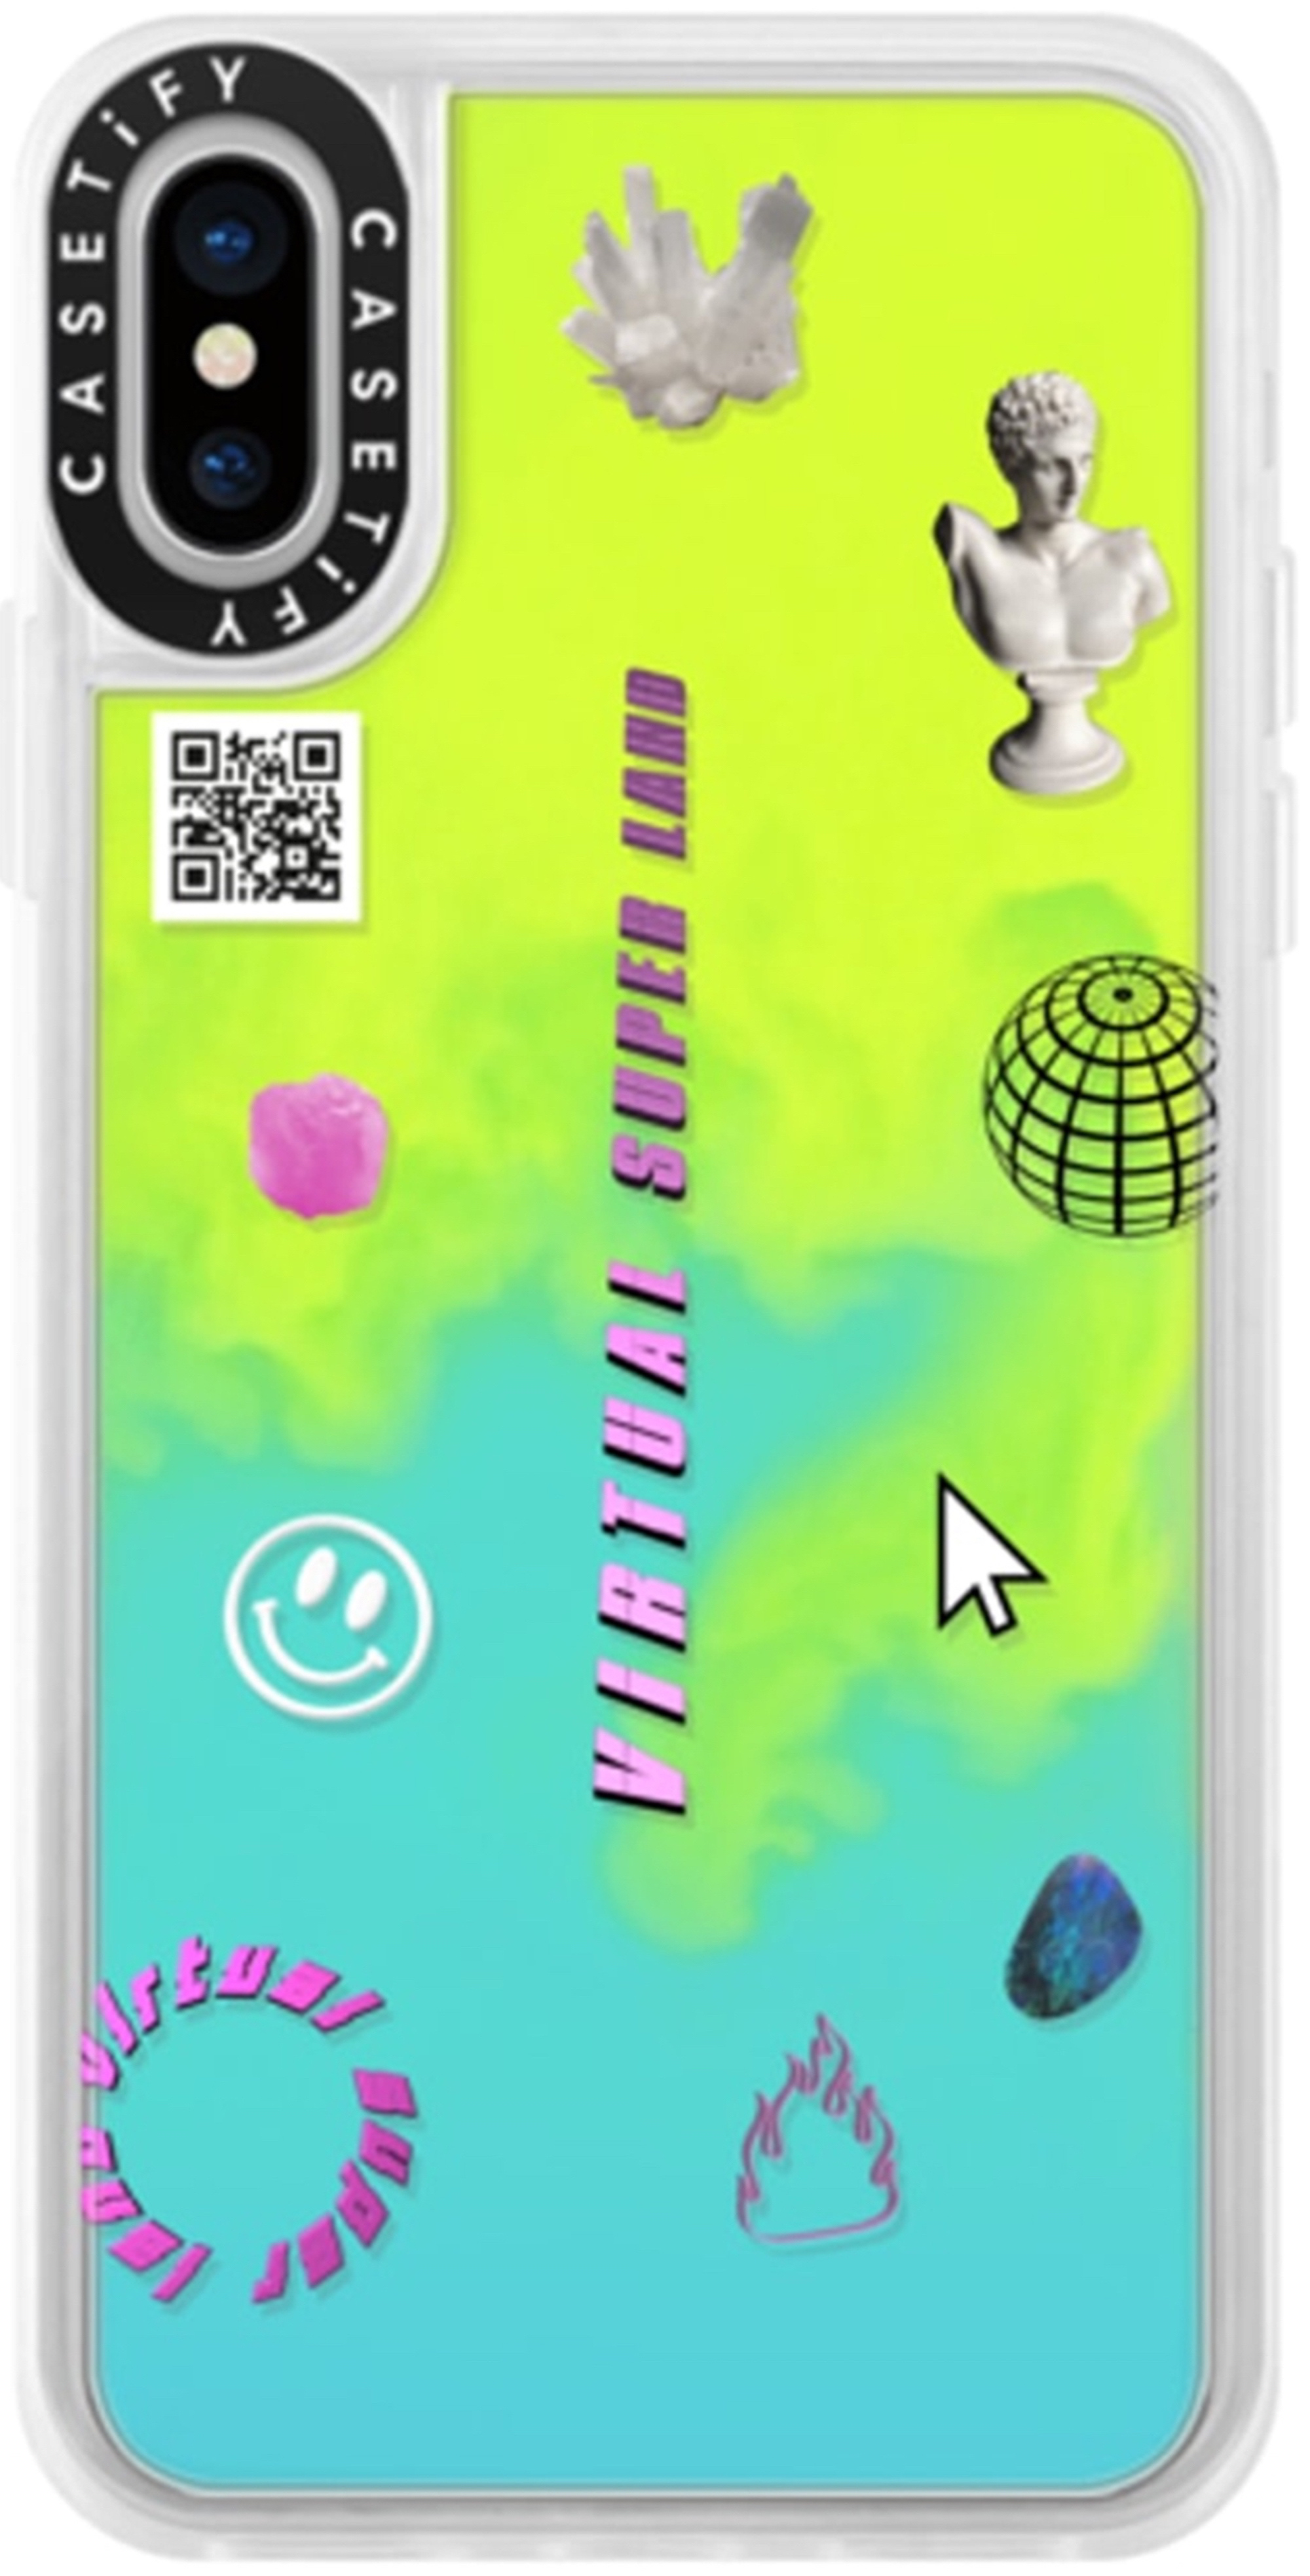 Wonderland commercial virtual super reality x CASETiFY phone case neon green and blue